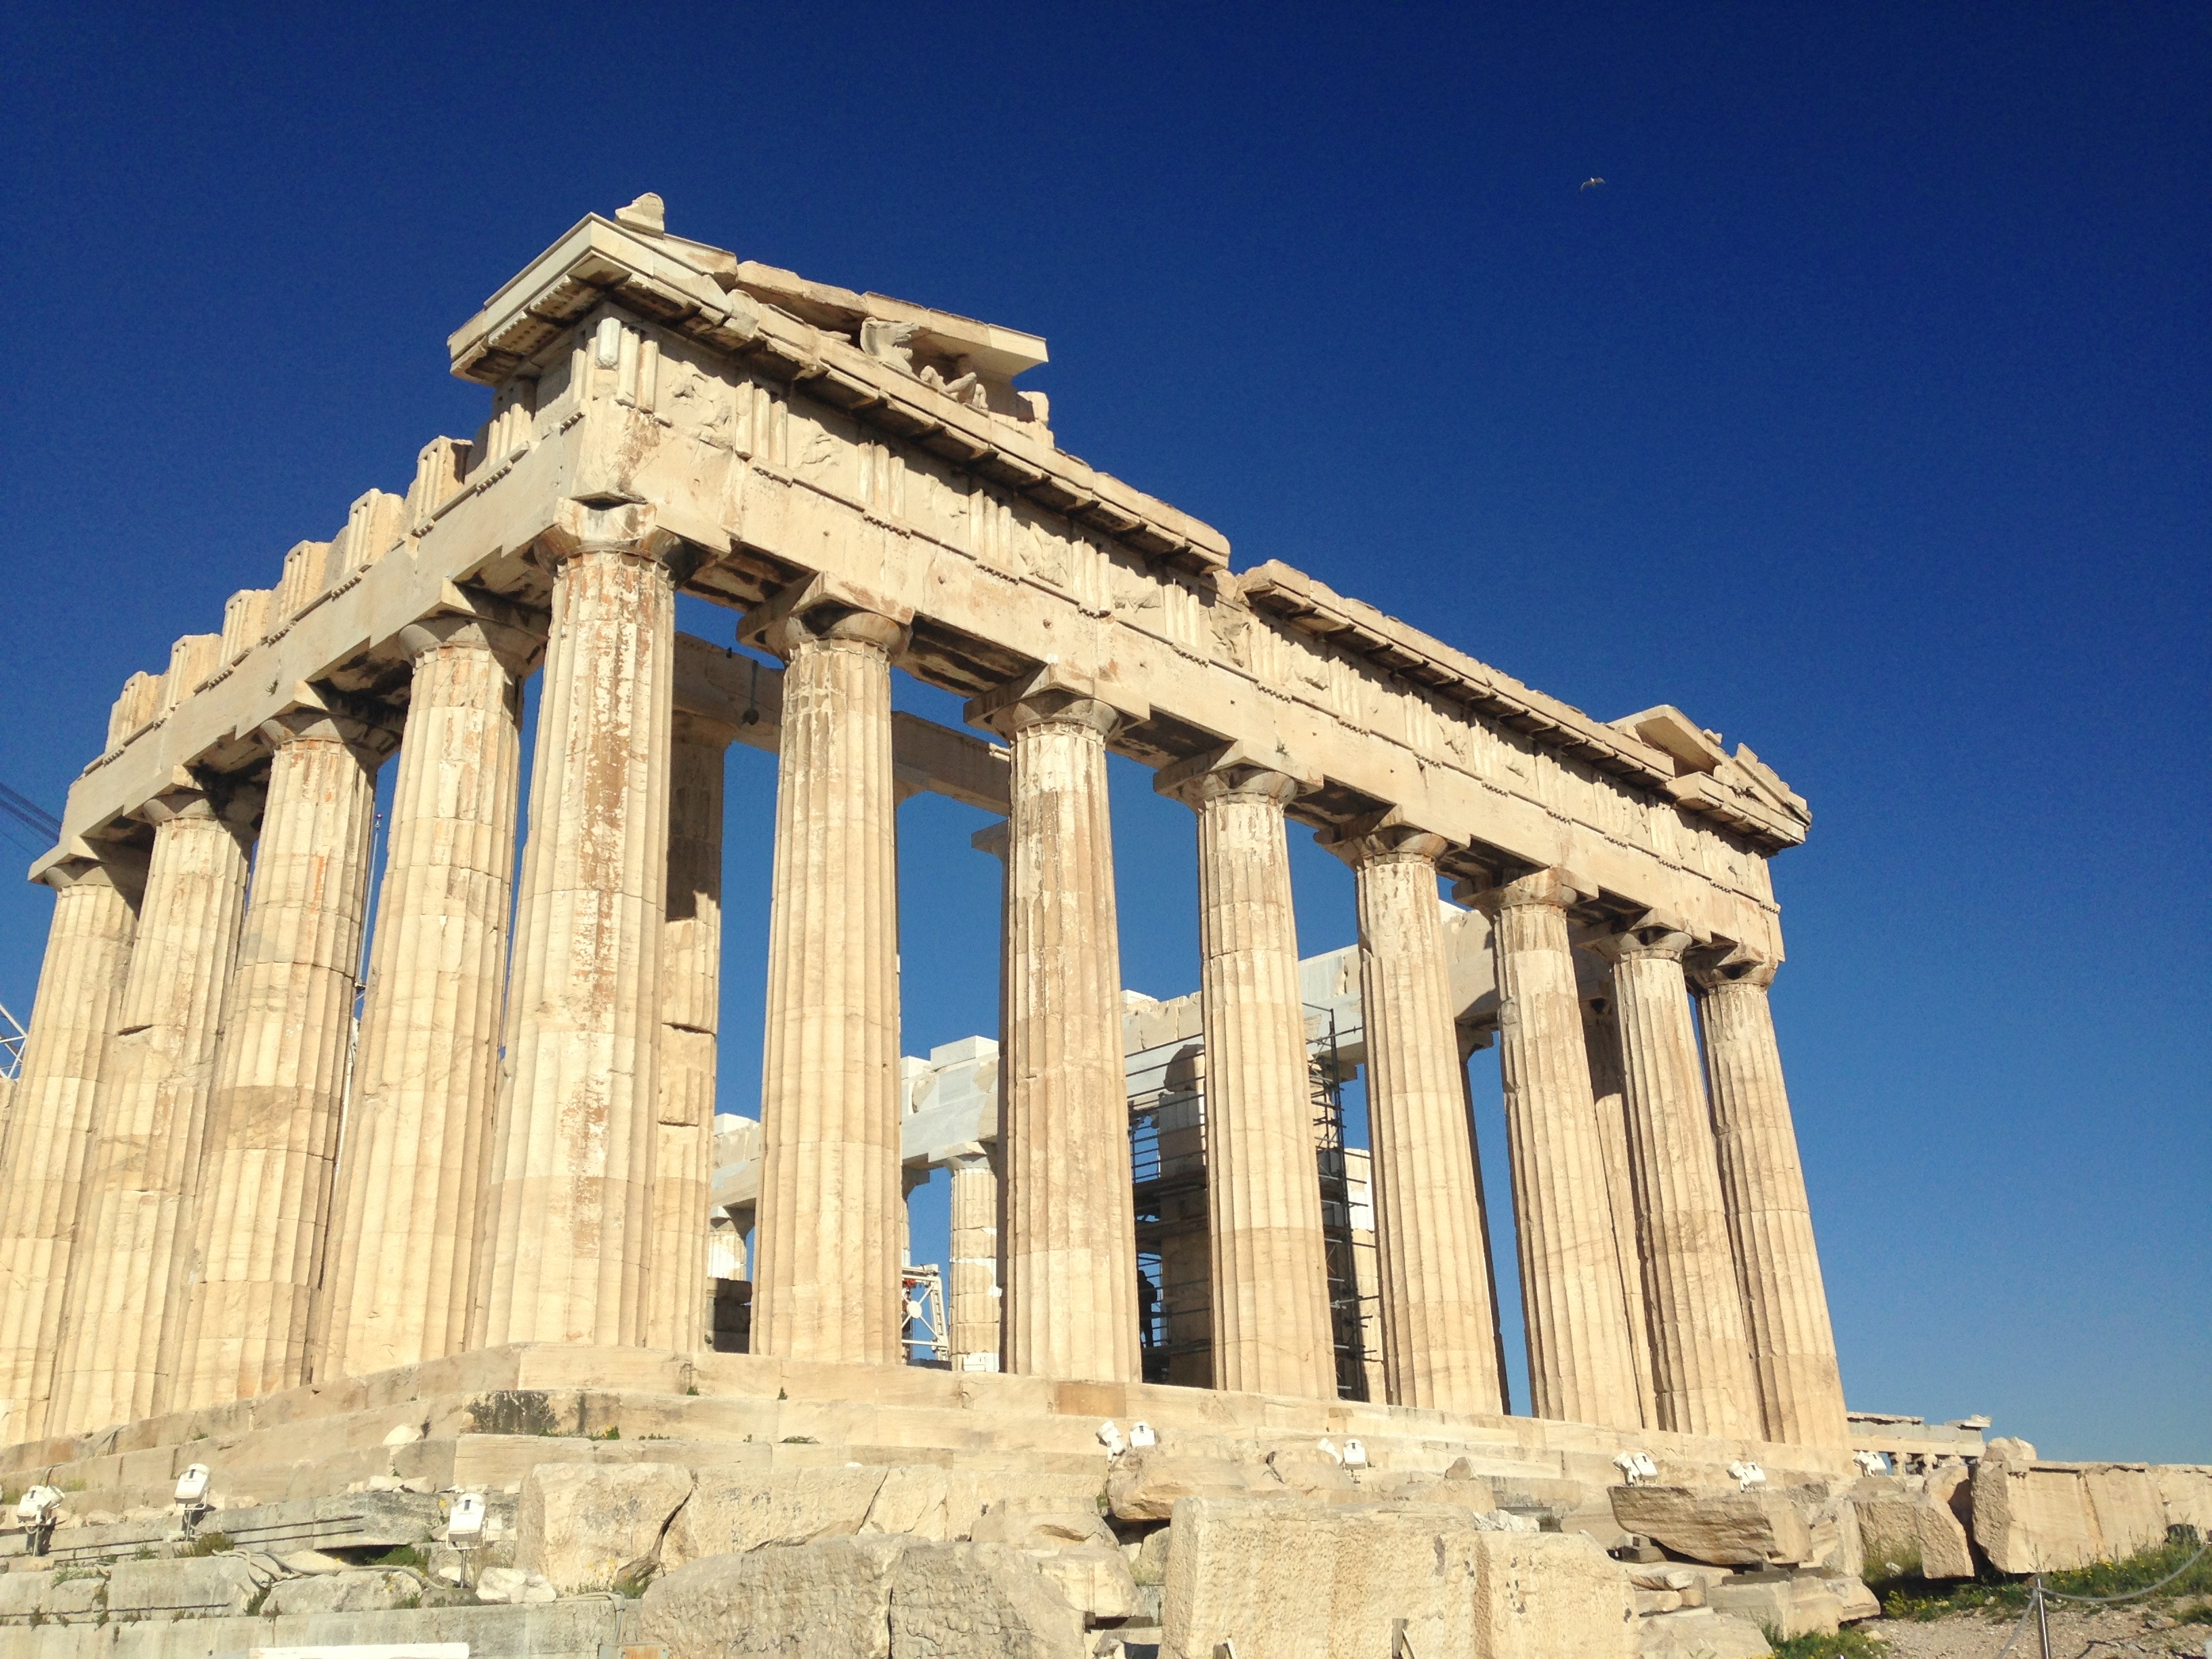 exploring the classical world on location with the module team